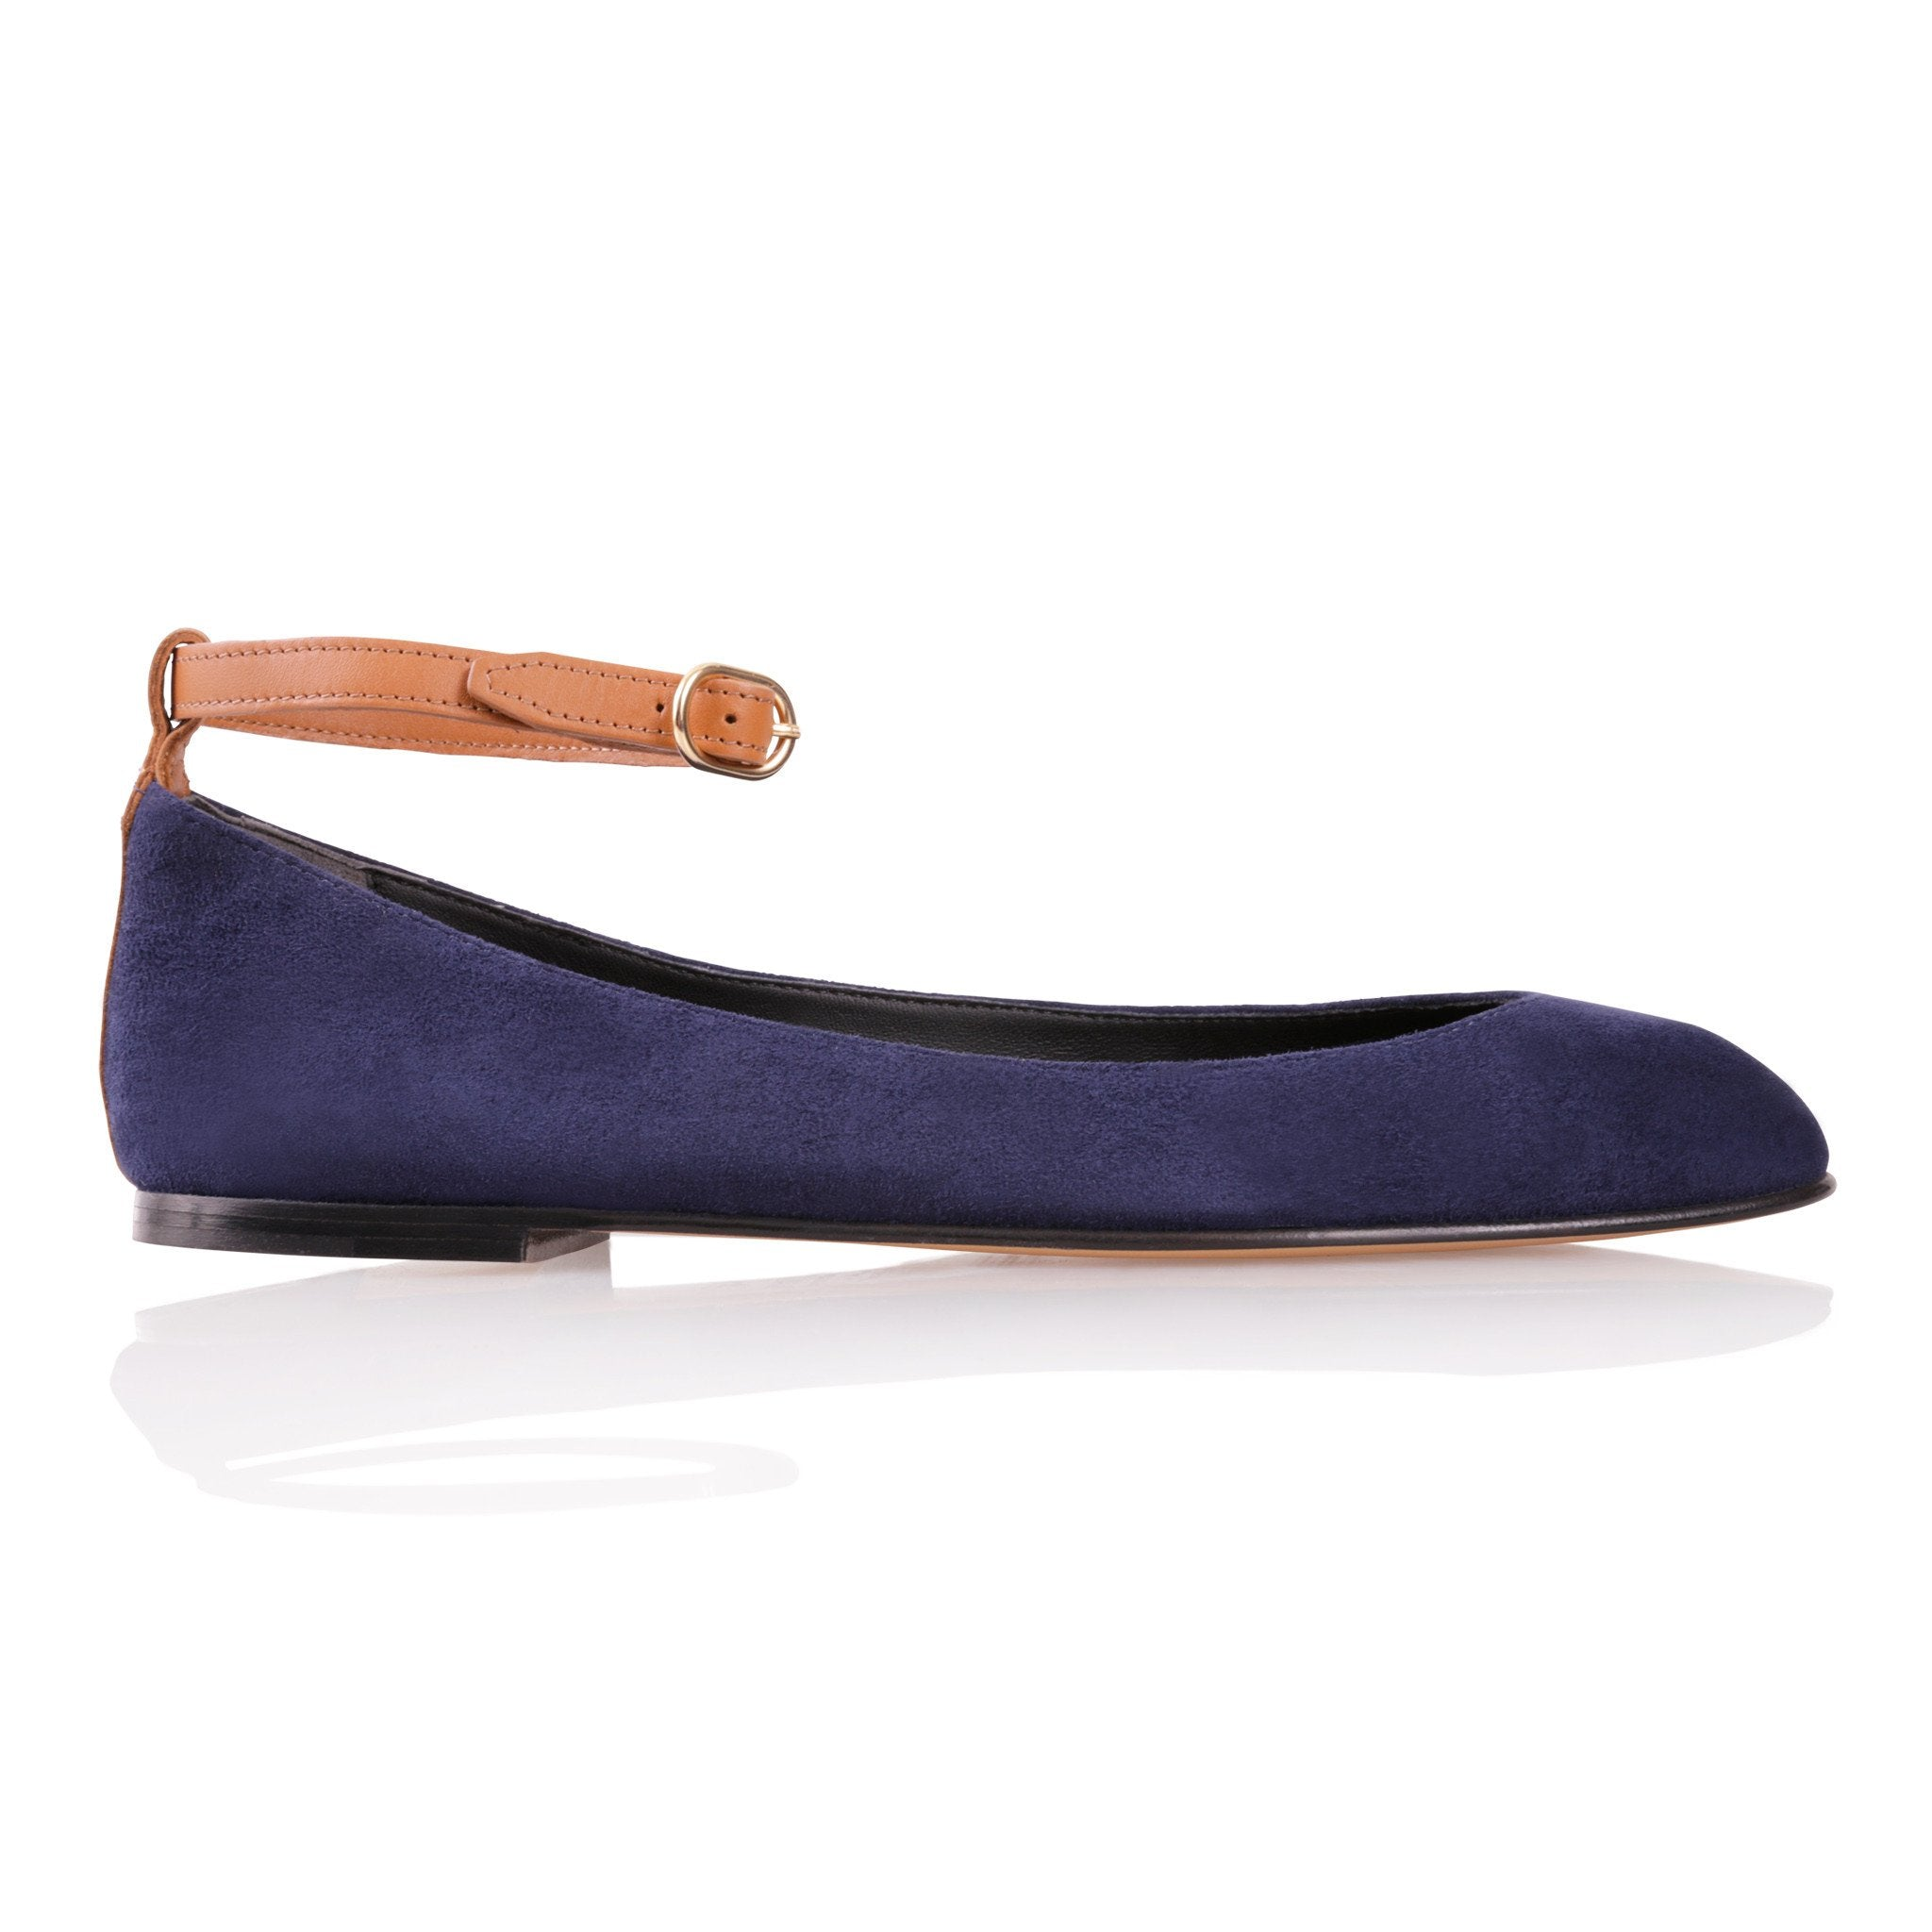 TORINO - Velukid Midnight + Calf Cuoio, VIAJIYU - Women's Hand Made Sustainable Luxury Shoes. Made in Italy. Made to Order.